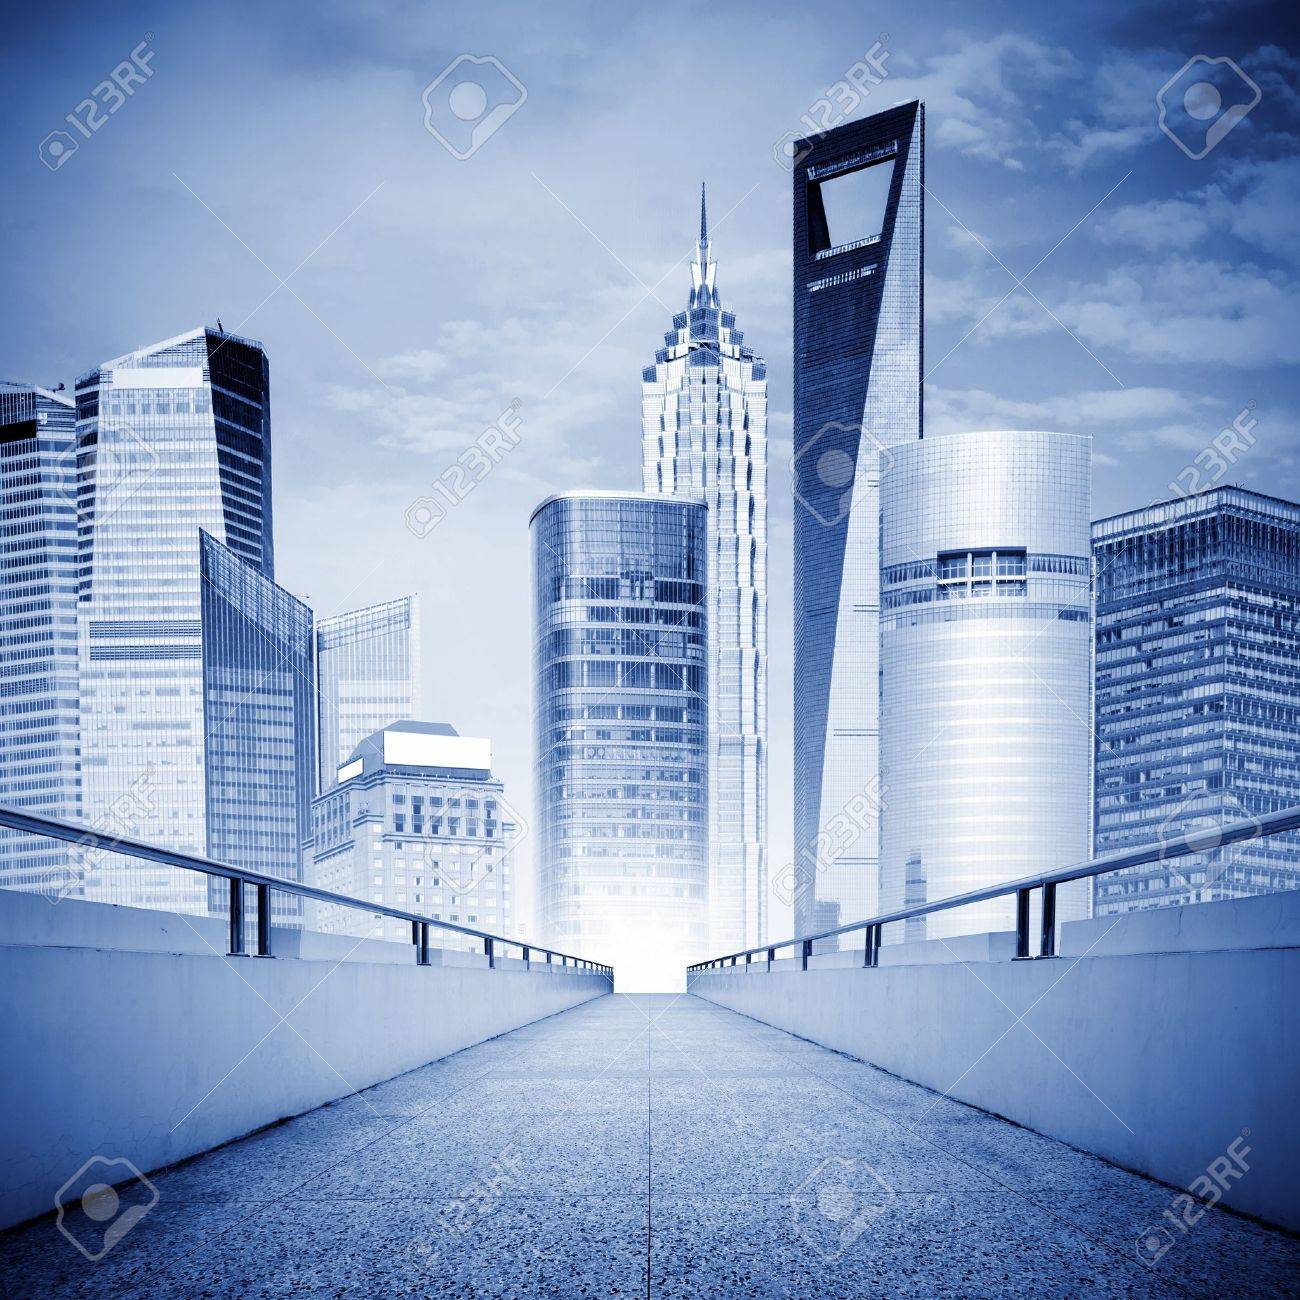 A corridor leads to modern metropolis, exaggerated expressions. Stock Photo - 9803156